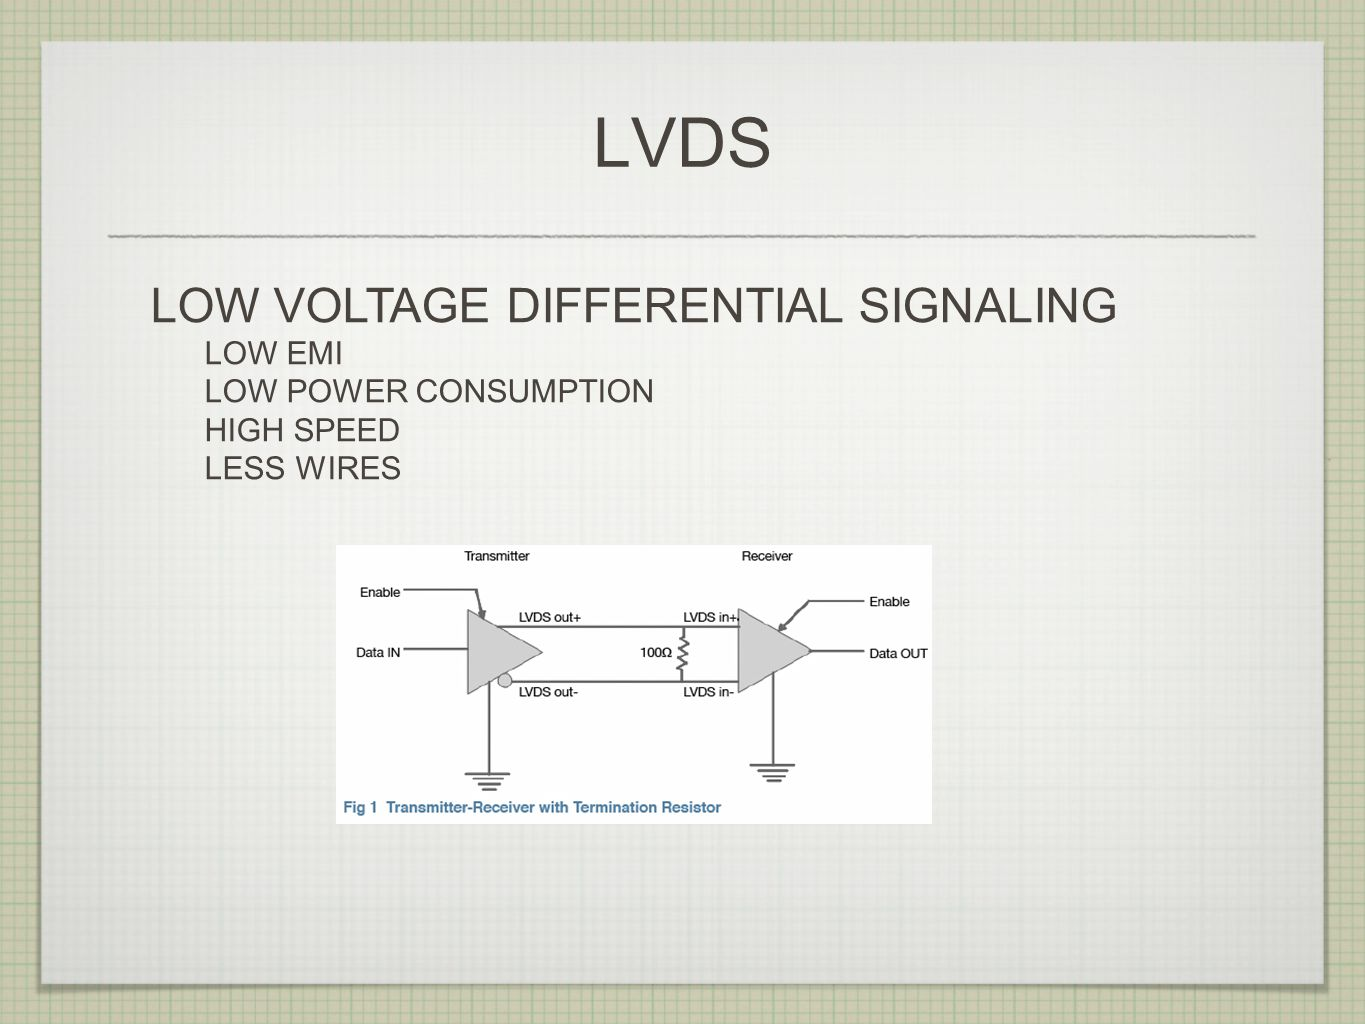 LVDS LOW VOLTAGE DIFFERENTIAL SIGNALING LOW EMI LOW POWER CONSUMPTION HIGH SPEED LESS WIRES